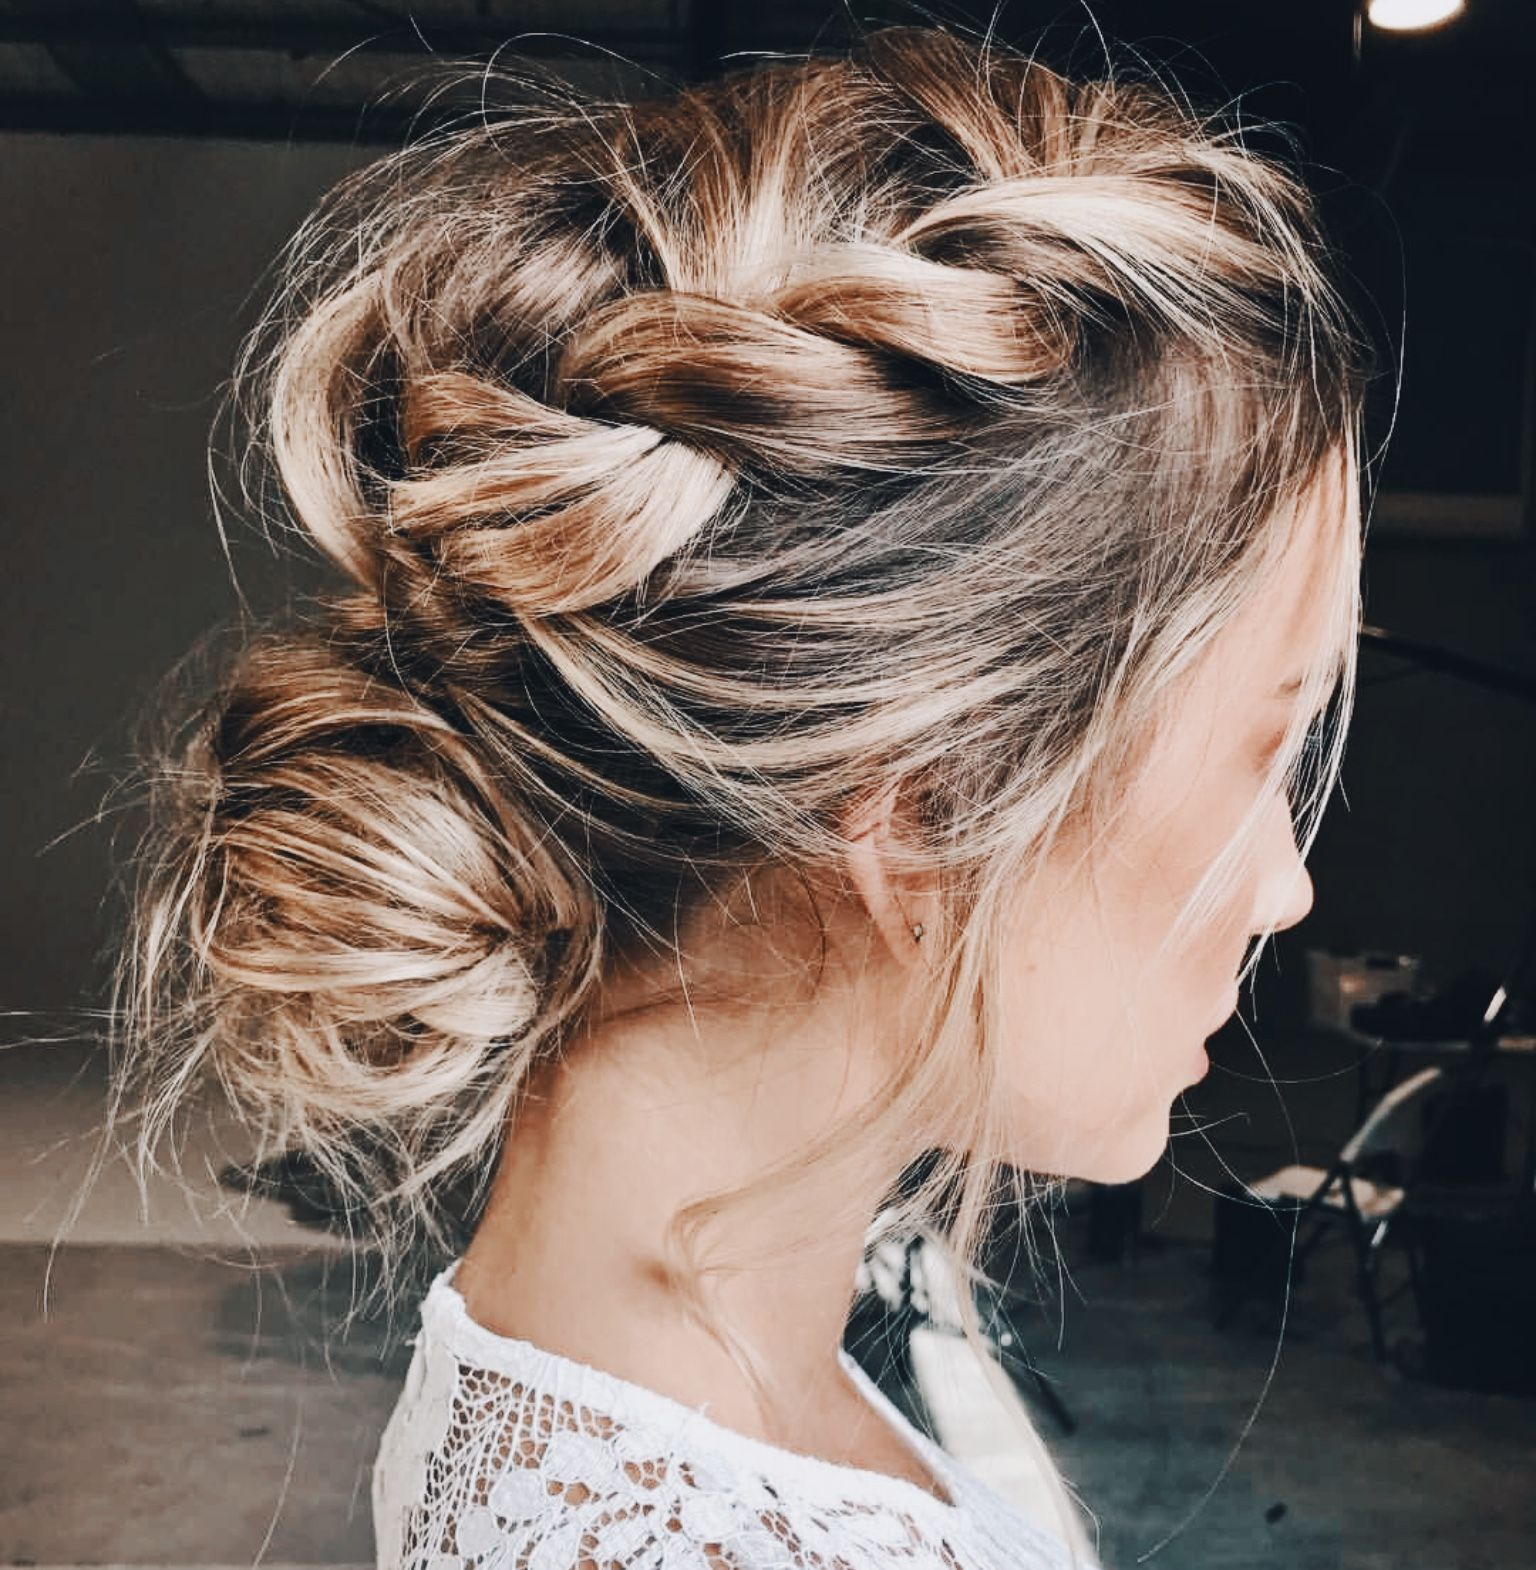 Pin by nicole snare on cute hairstyles pinterest hair style